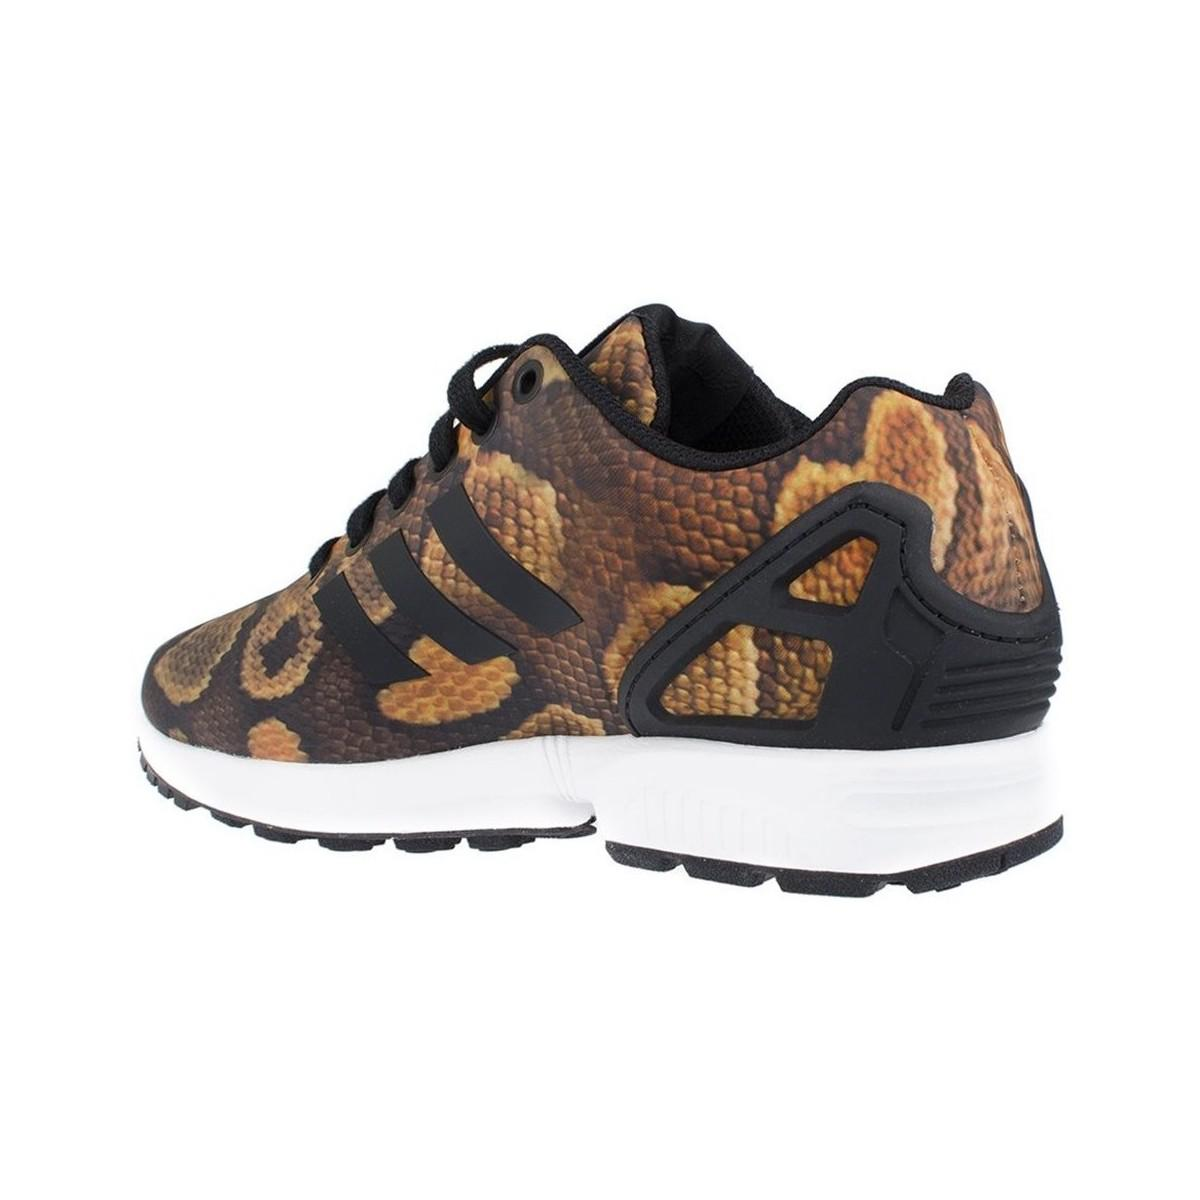 adidas Zx Flux Python Snake Women's Shoes (trainers) In Black